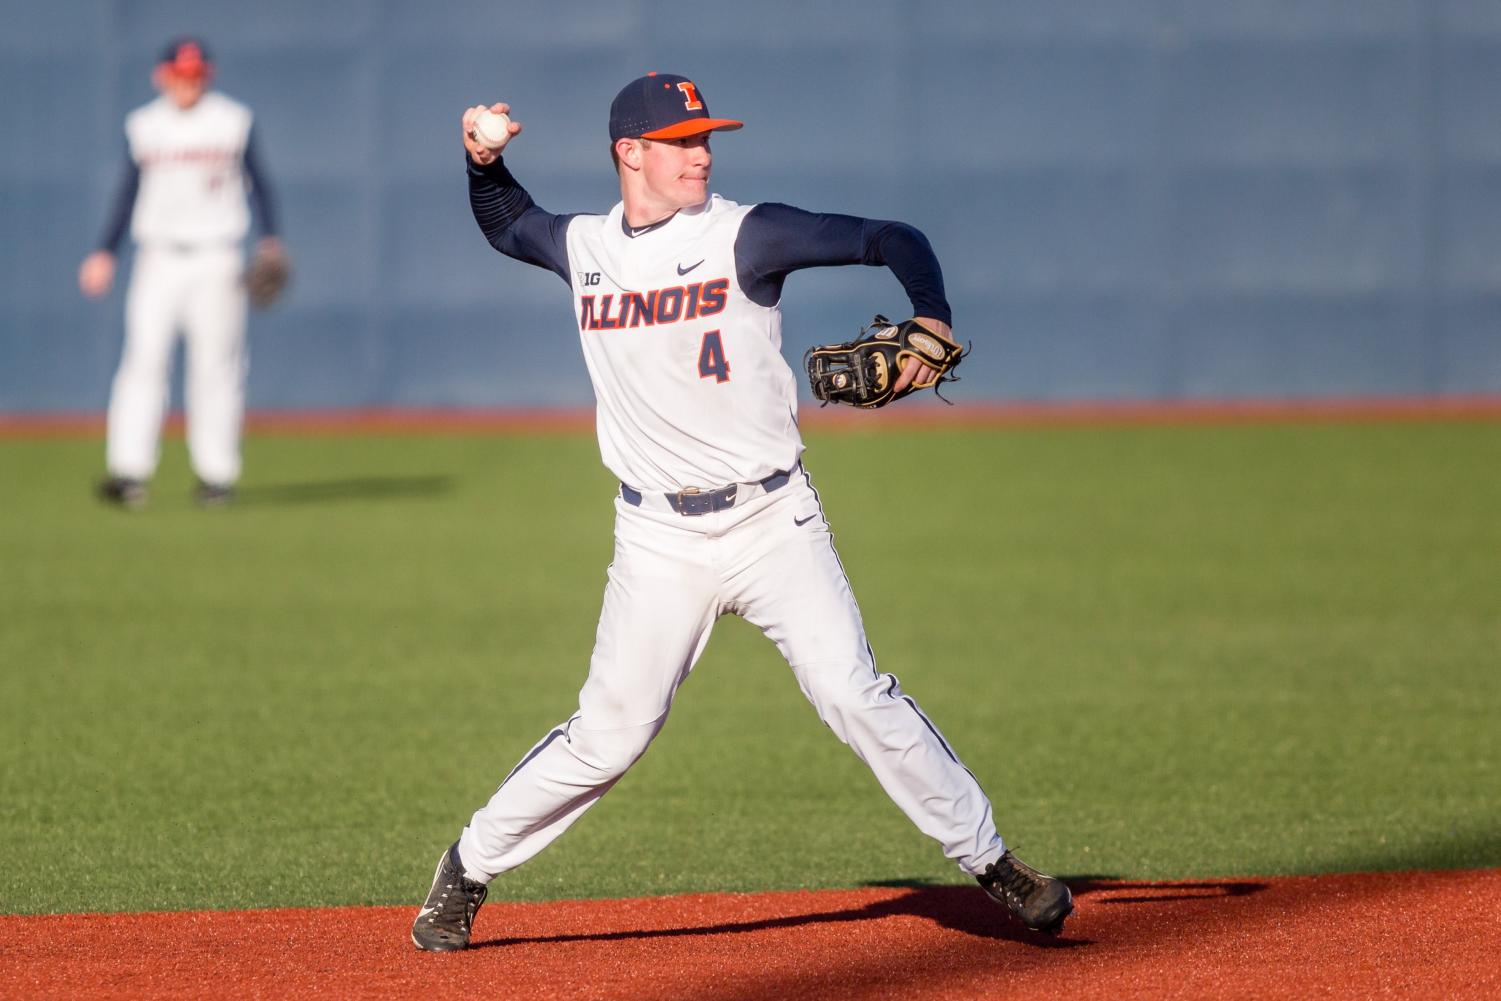 Illinois shortstop Ben Troike makes a throw to first during the game against Milwaukee at the Illinois Field on March 14. When playing Northwestern this weekend, Troike made a play that gained him the No. 5 slot on SportsCenter's Top 10.